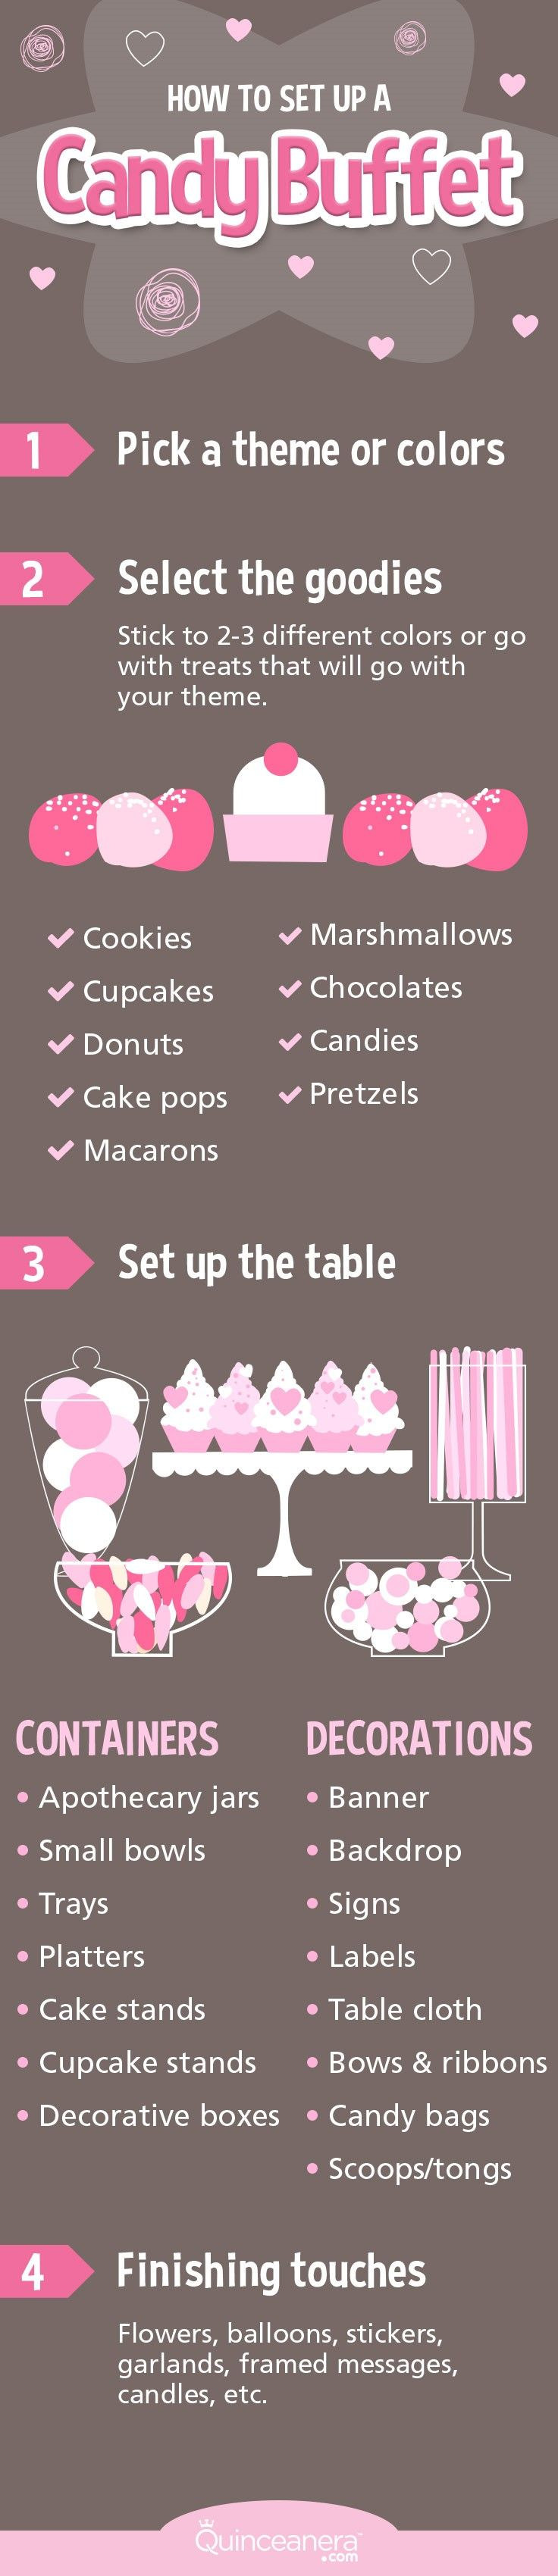 Decorate your candy buffet with extravagant backdrops, cupcakes topped with edible figurines matching your theme, and a massive 10-tiered cake with over-the-top embellishments! Here are some tips to make it stand out to the max: - See more at: http://www.quinceanera.com/decorations-themes/20-most-creative-candy-buffets-youve-ever-seen/#sthash.an0KPE59.dpuf